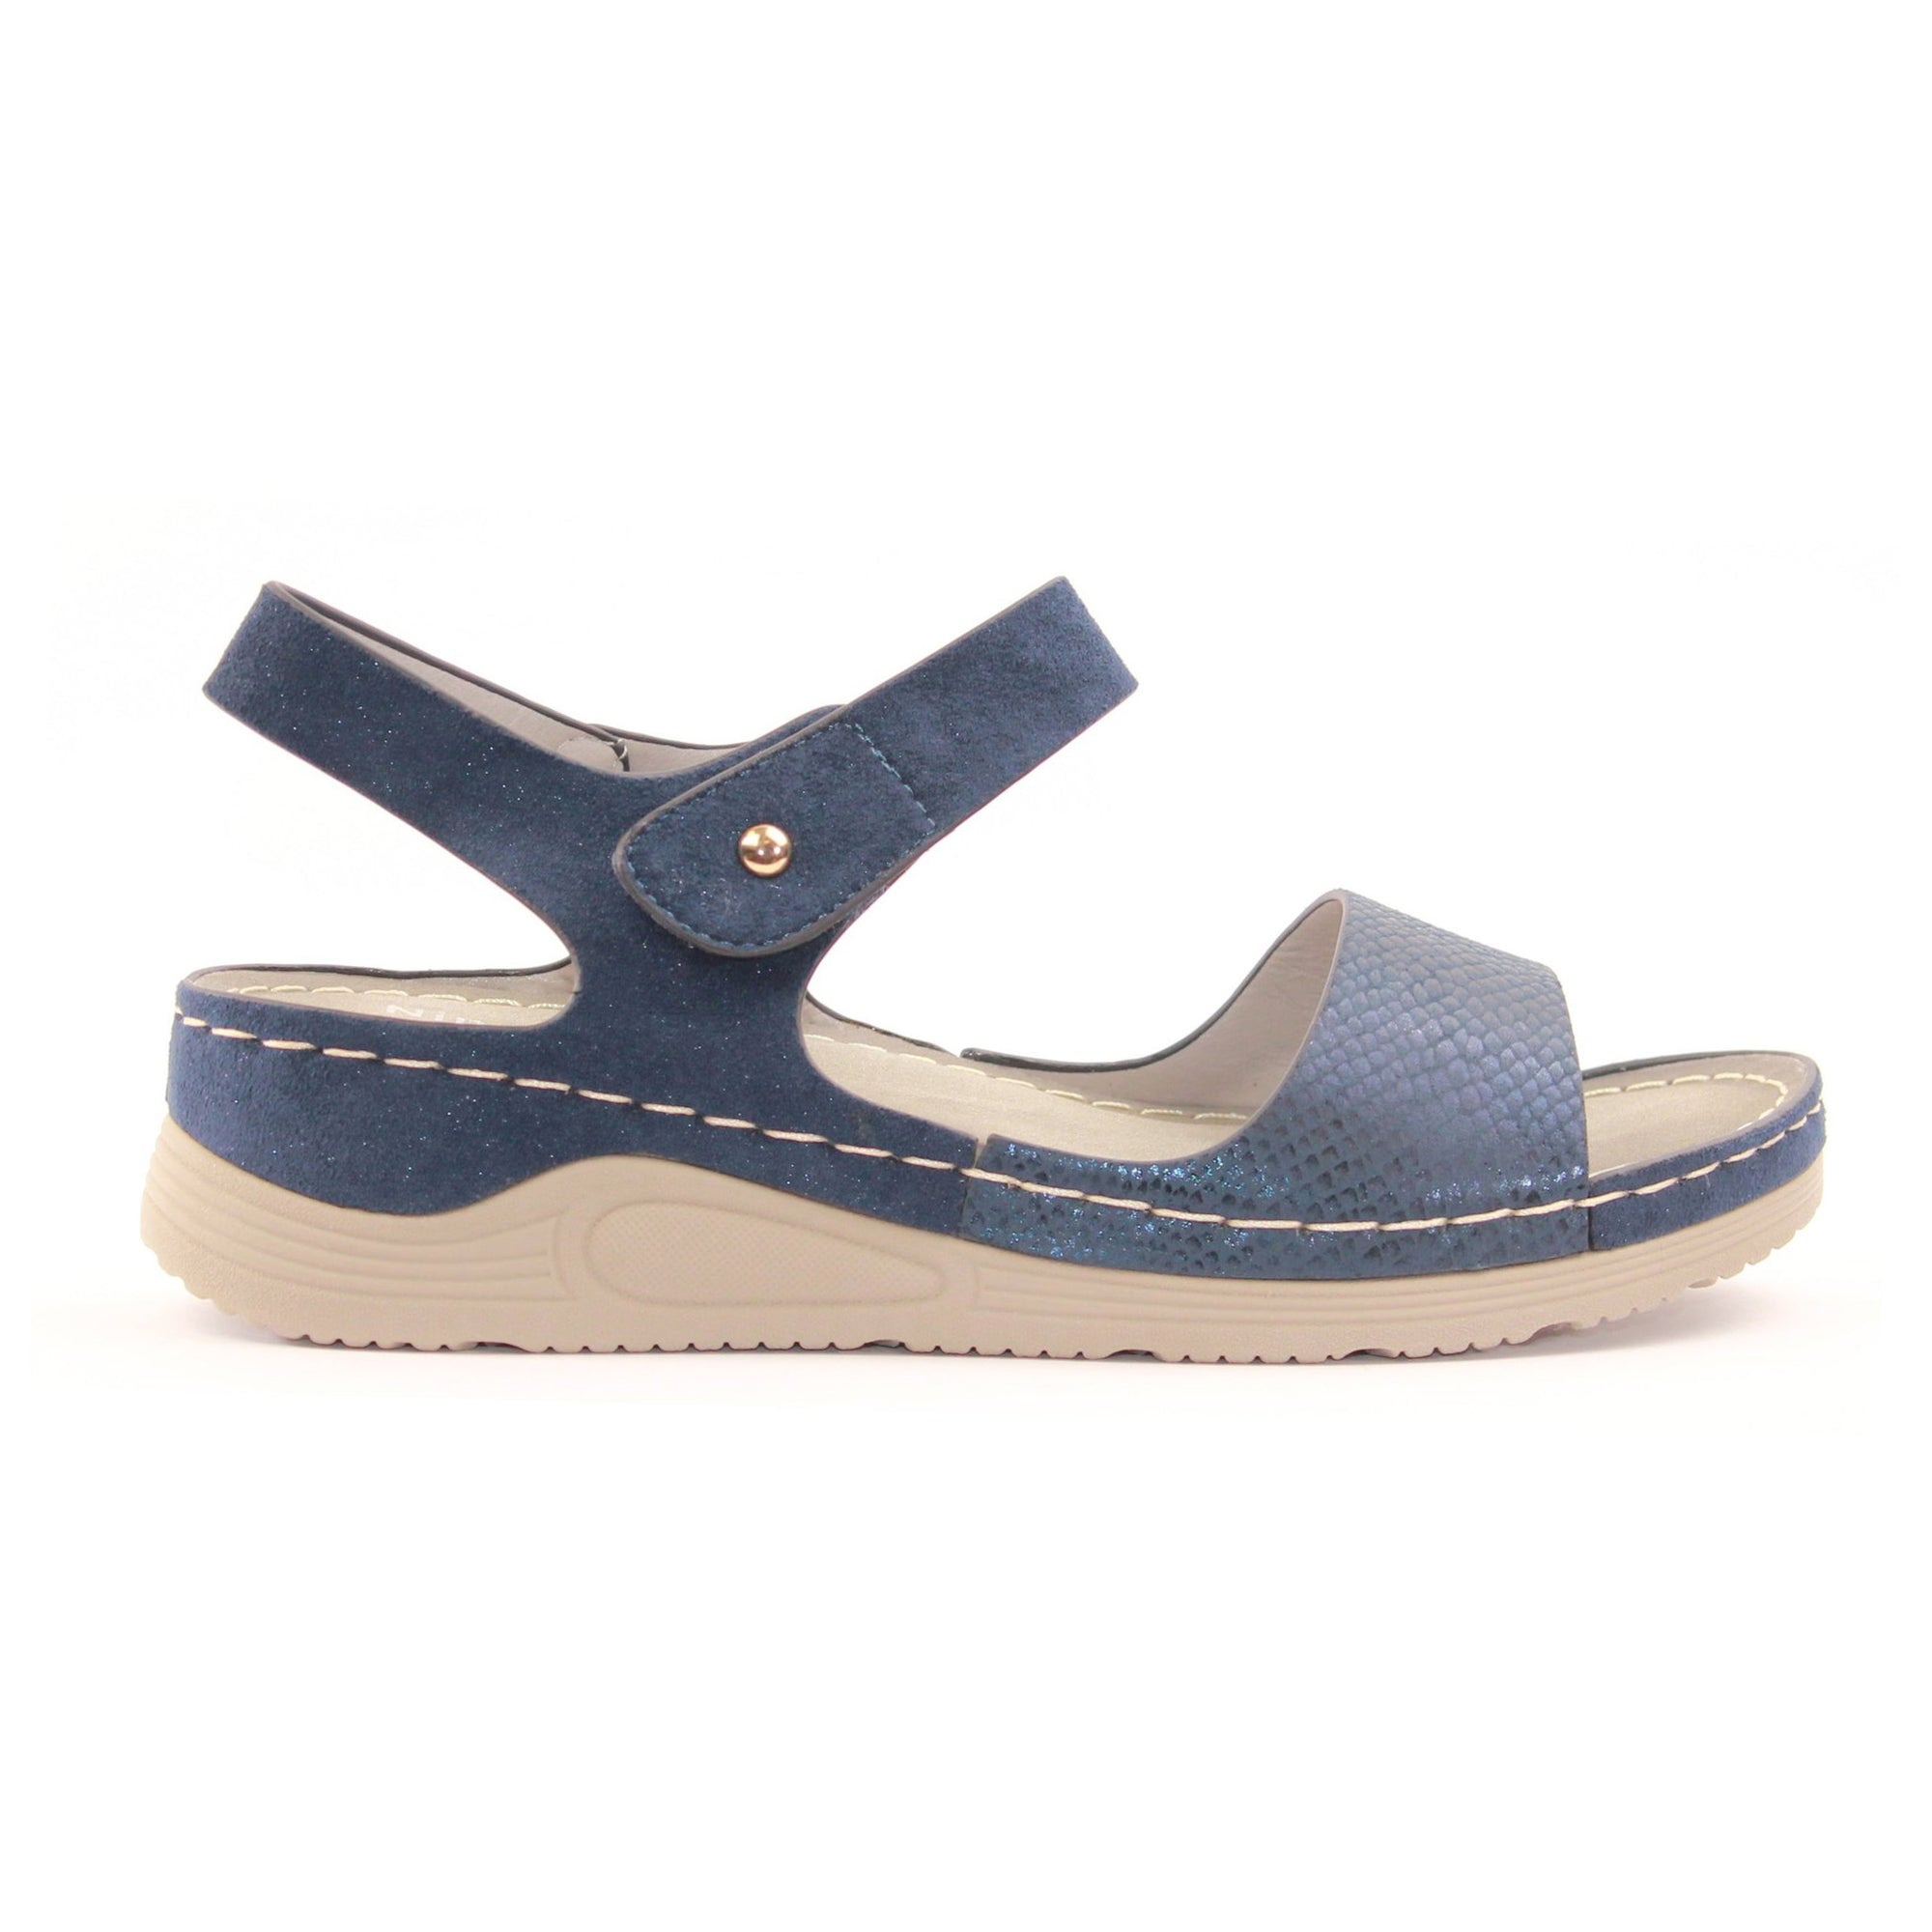 Redz  Wedge Sandals - B18 - Navy